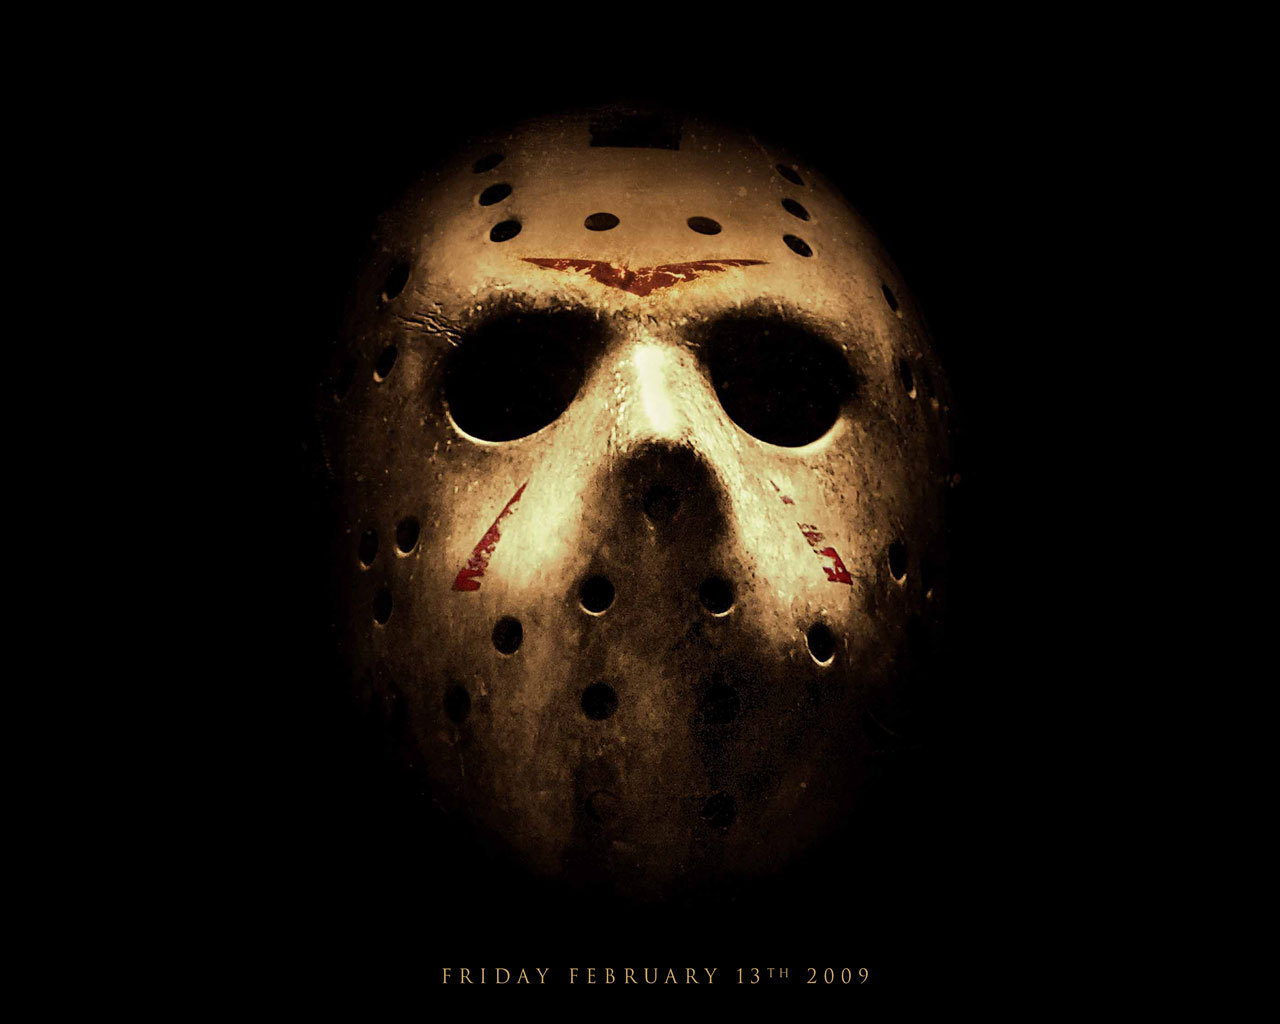 friday the 13th (7)